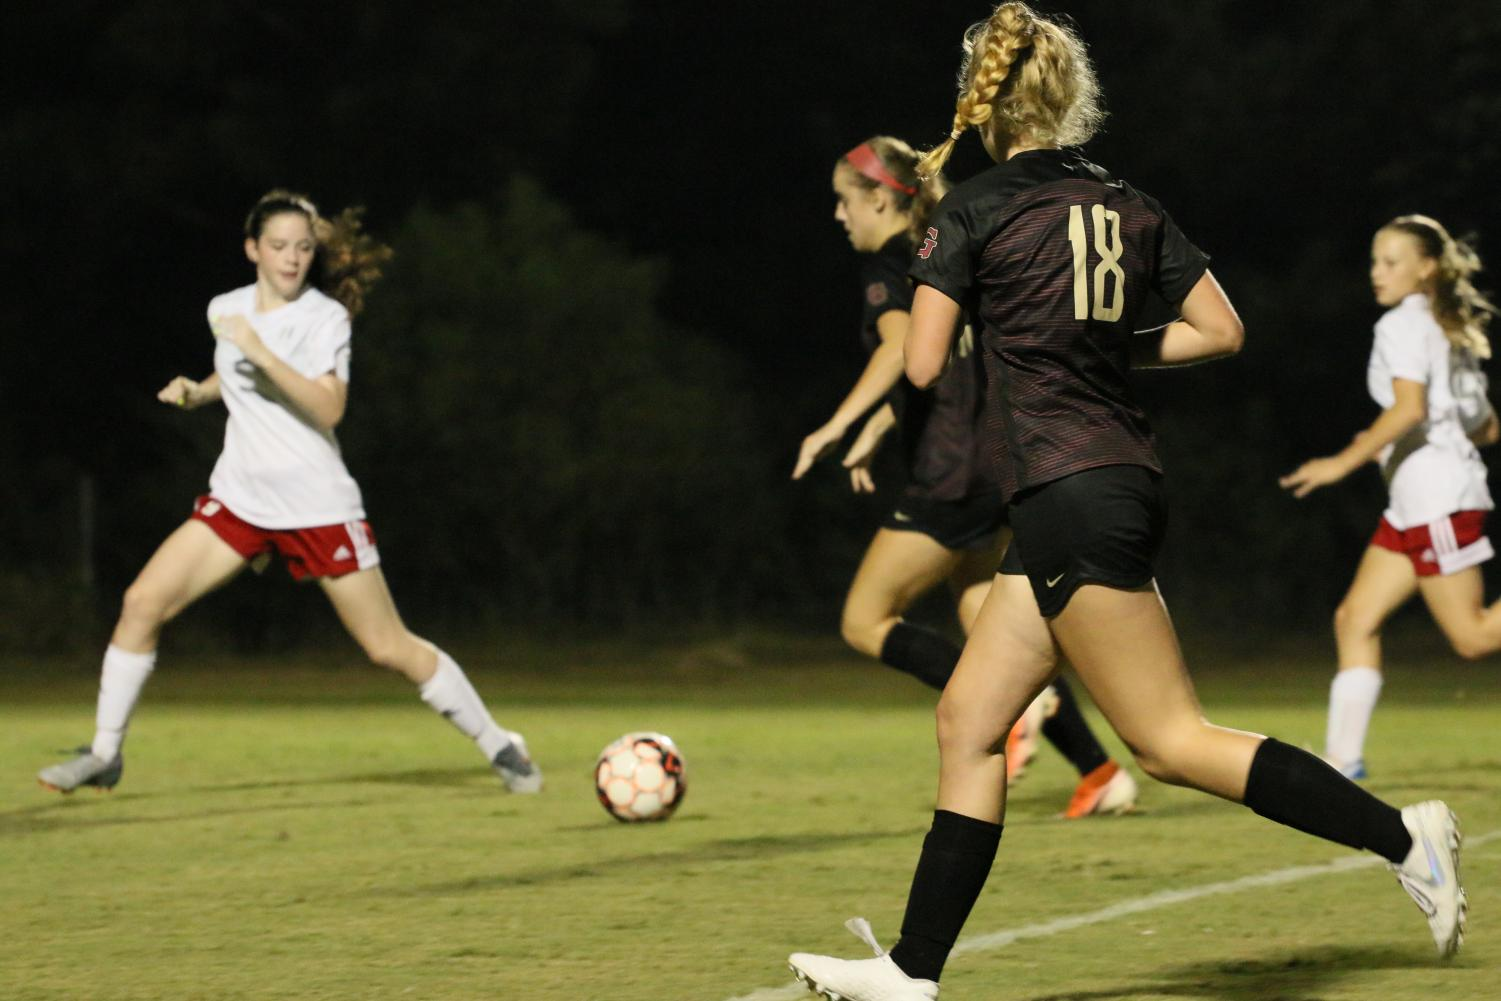 The St. George's Varsity Girls Soccer Team played Harding Academy on Tuesday, Sept. 17, 2019. The U.S. Women's National Team is fighting to ensure gender equality in and out of athletics for current and future generations.